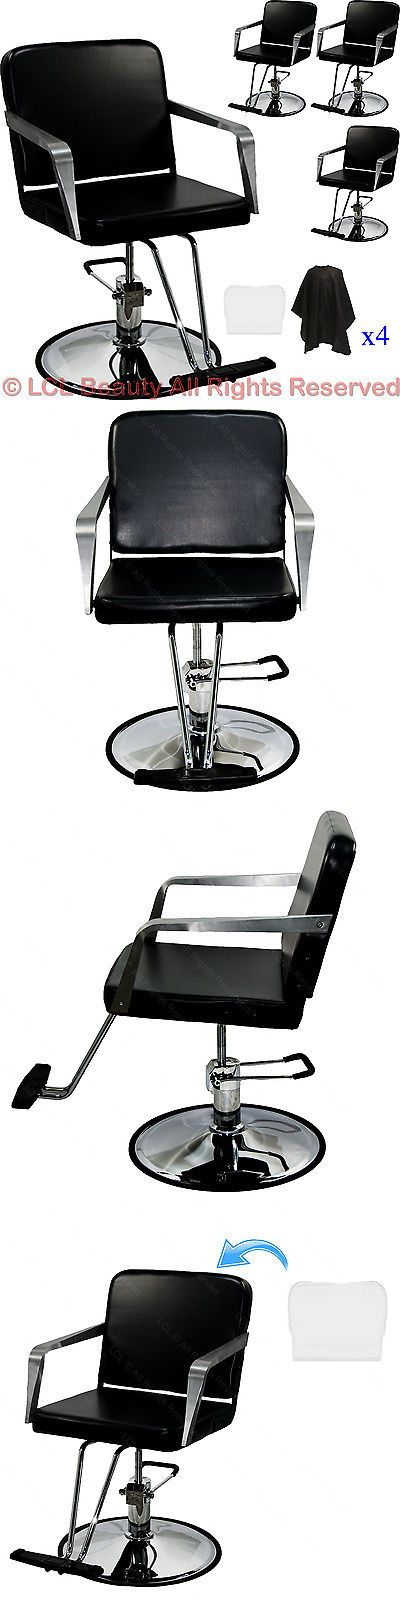 Salon Chairs and Dryers: 4X Professional Black Hydraulic Styling Barber Chair Spa Beauty Salon Equipment -> BUY IT NOW ONLY: $498.88 on eBay!